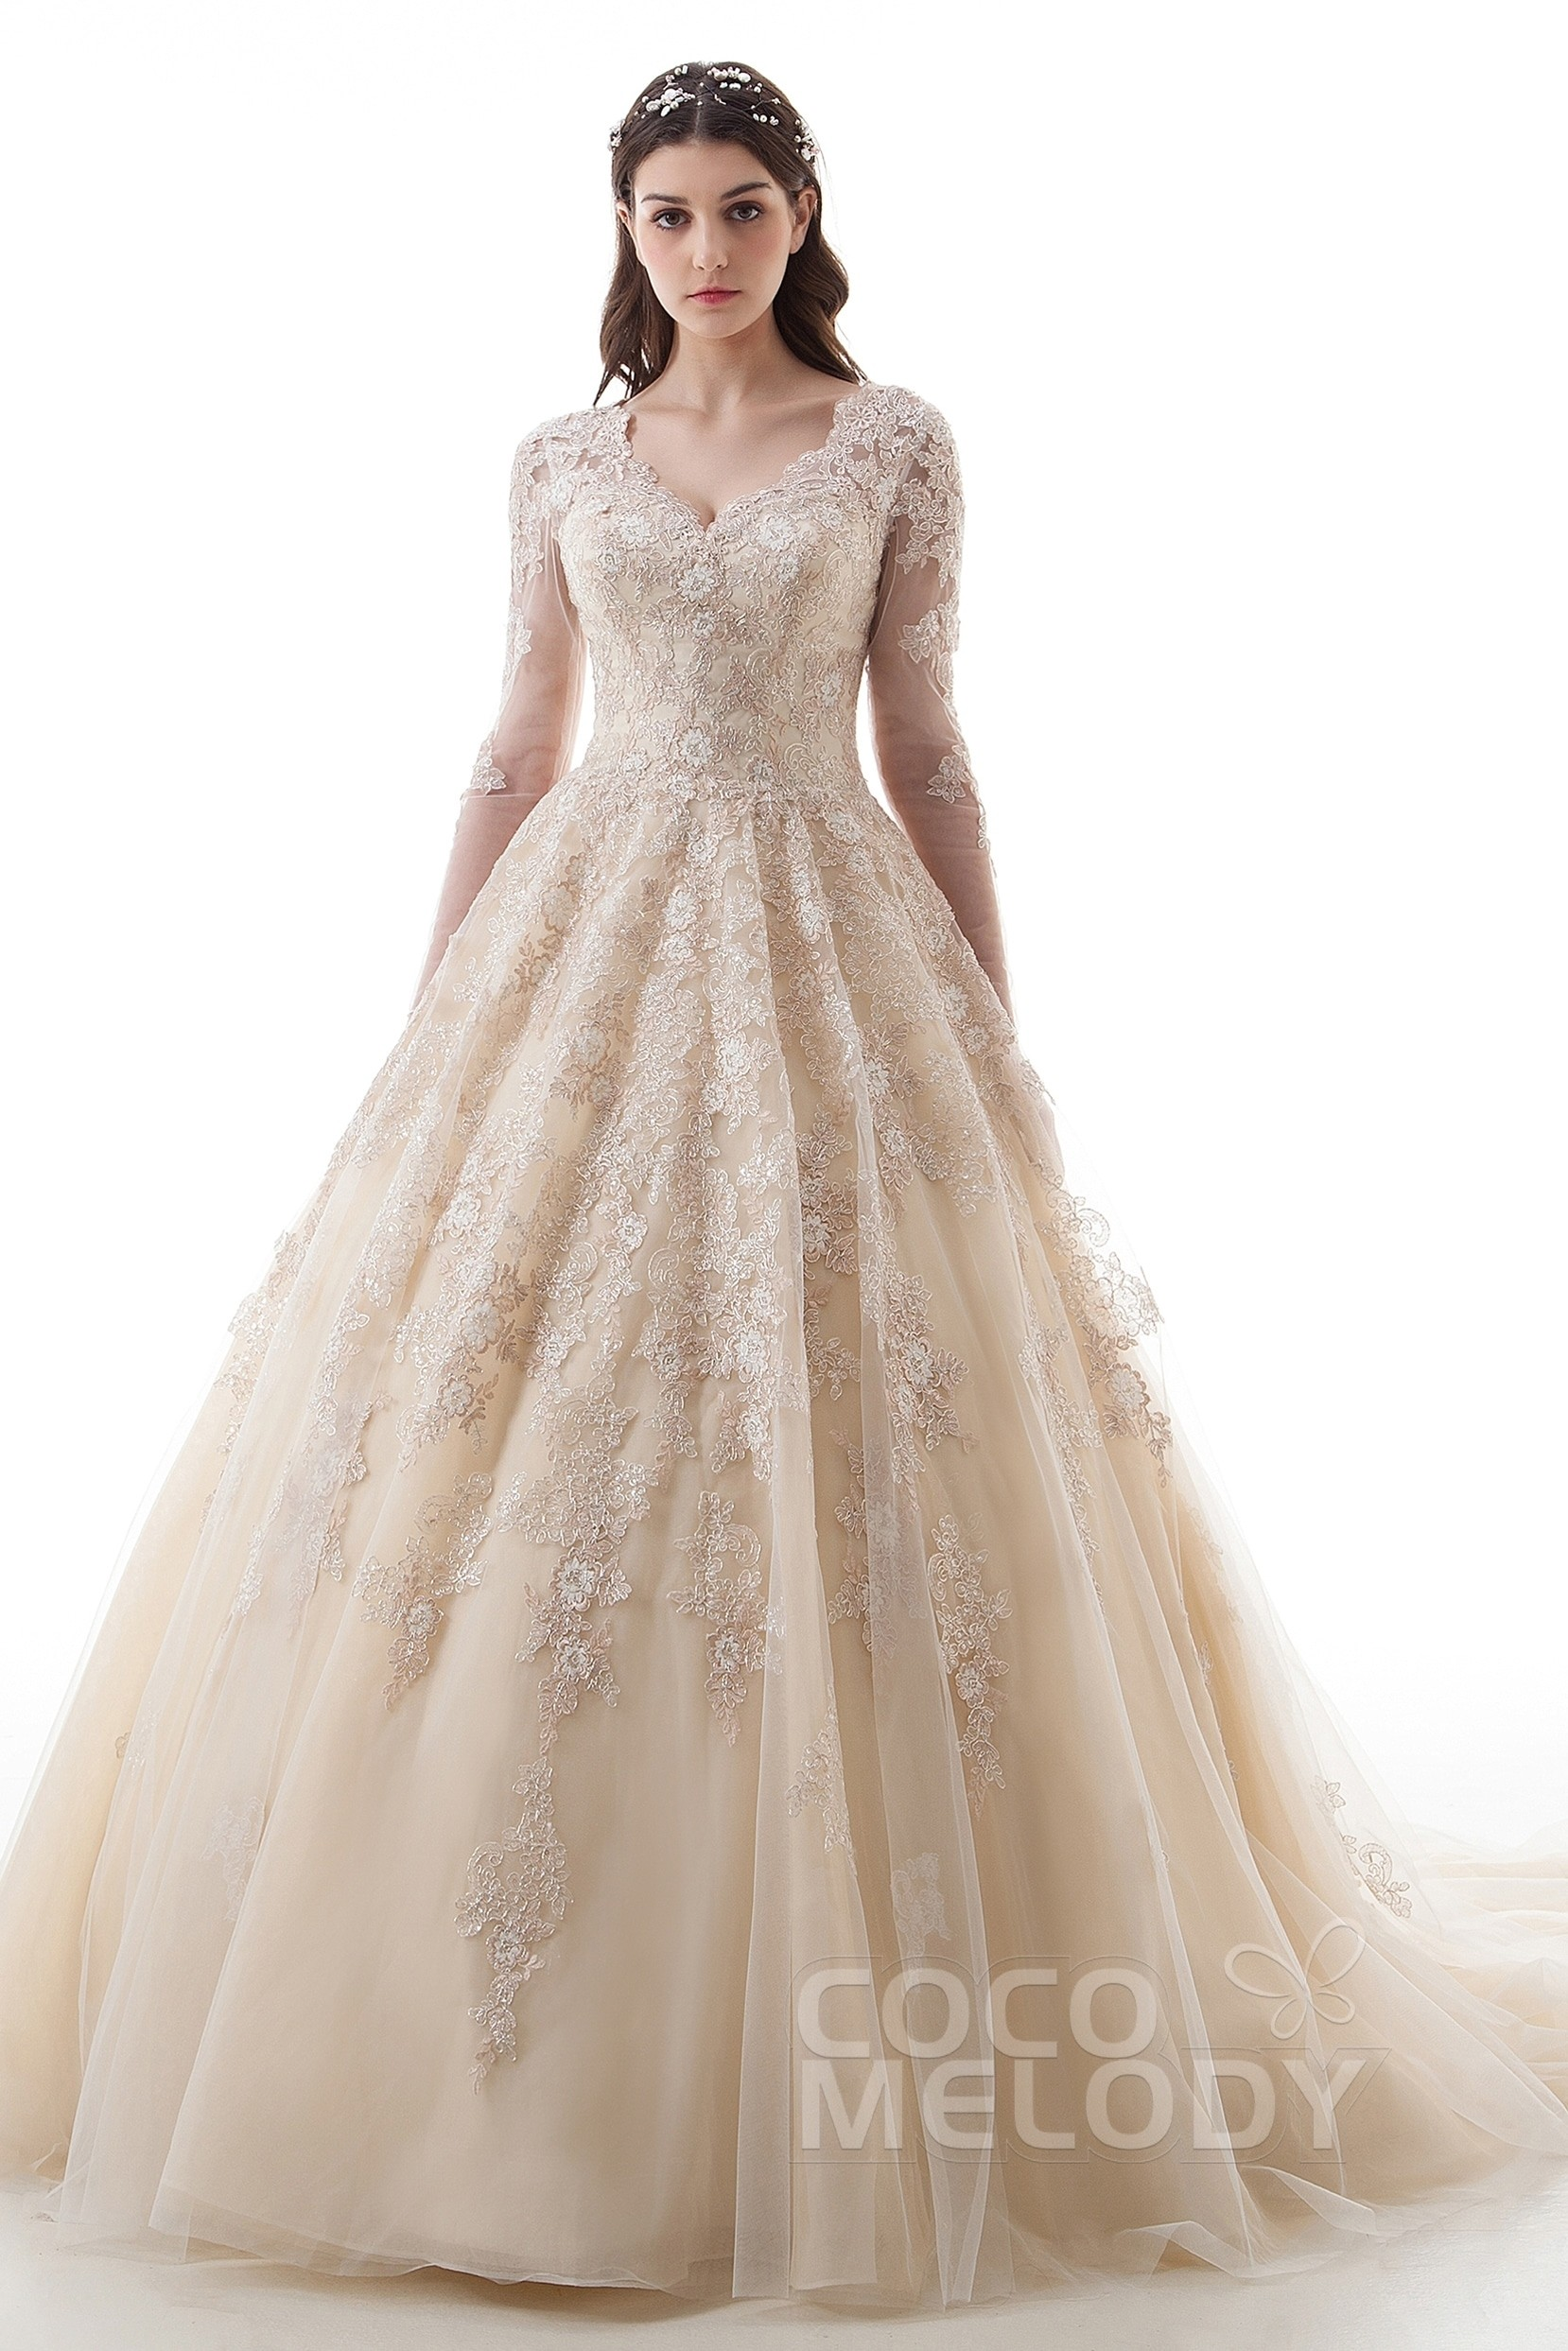 Princess Court Train Tulle Wedding Dress LD4622 | Cocomelody